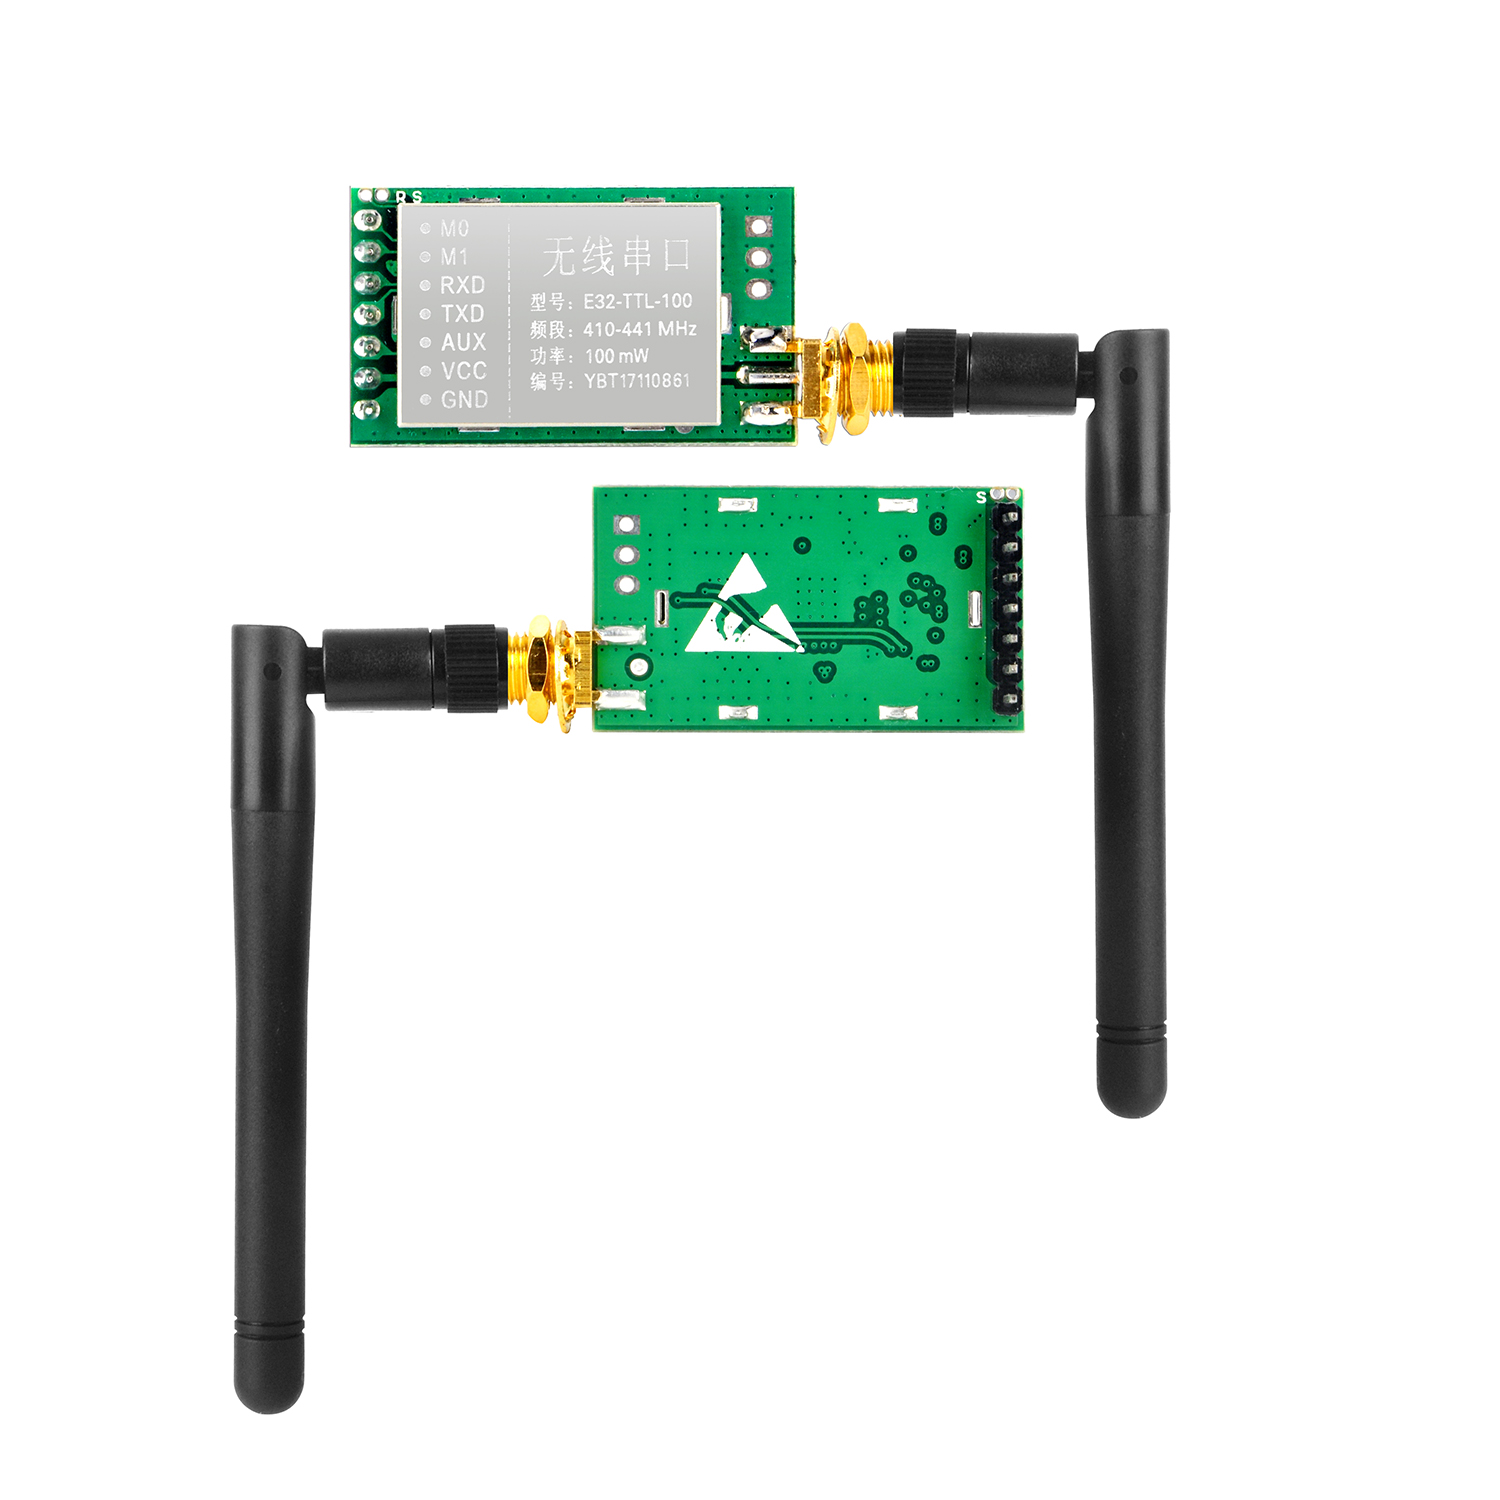 Osoyoo SX1278 LoRa Wireless Uart Module with Antenna - 433MHZ